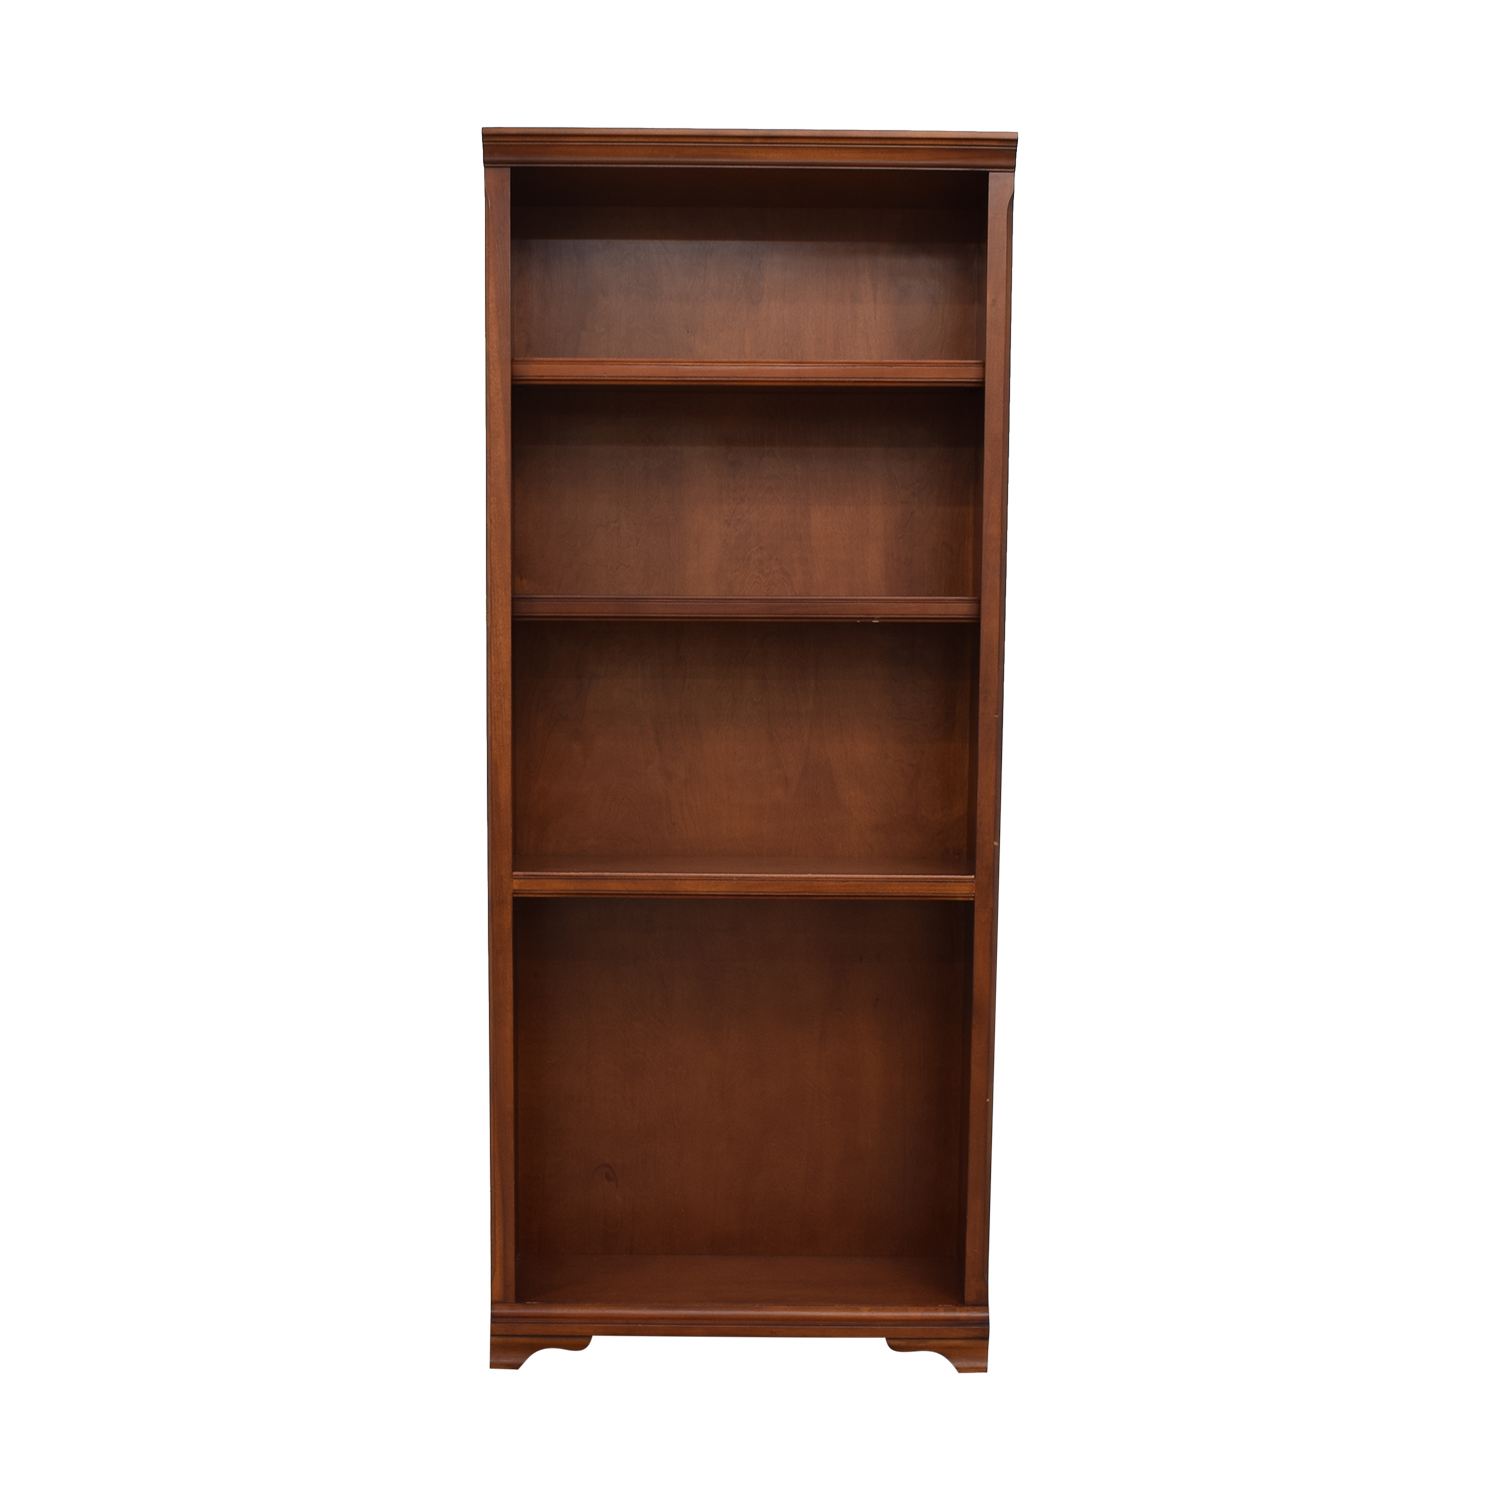 Raymour & Flanigan Raymour & Flanigan Bookcase discount